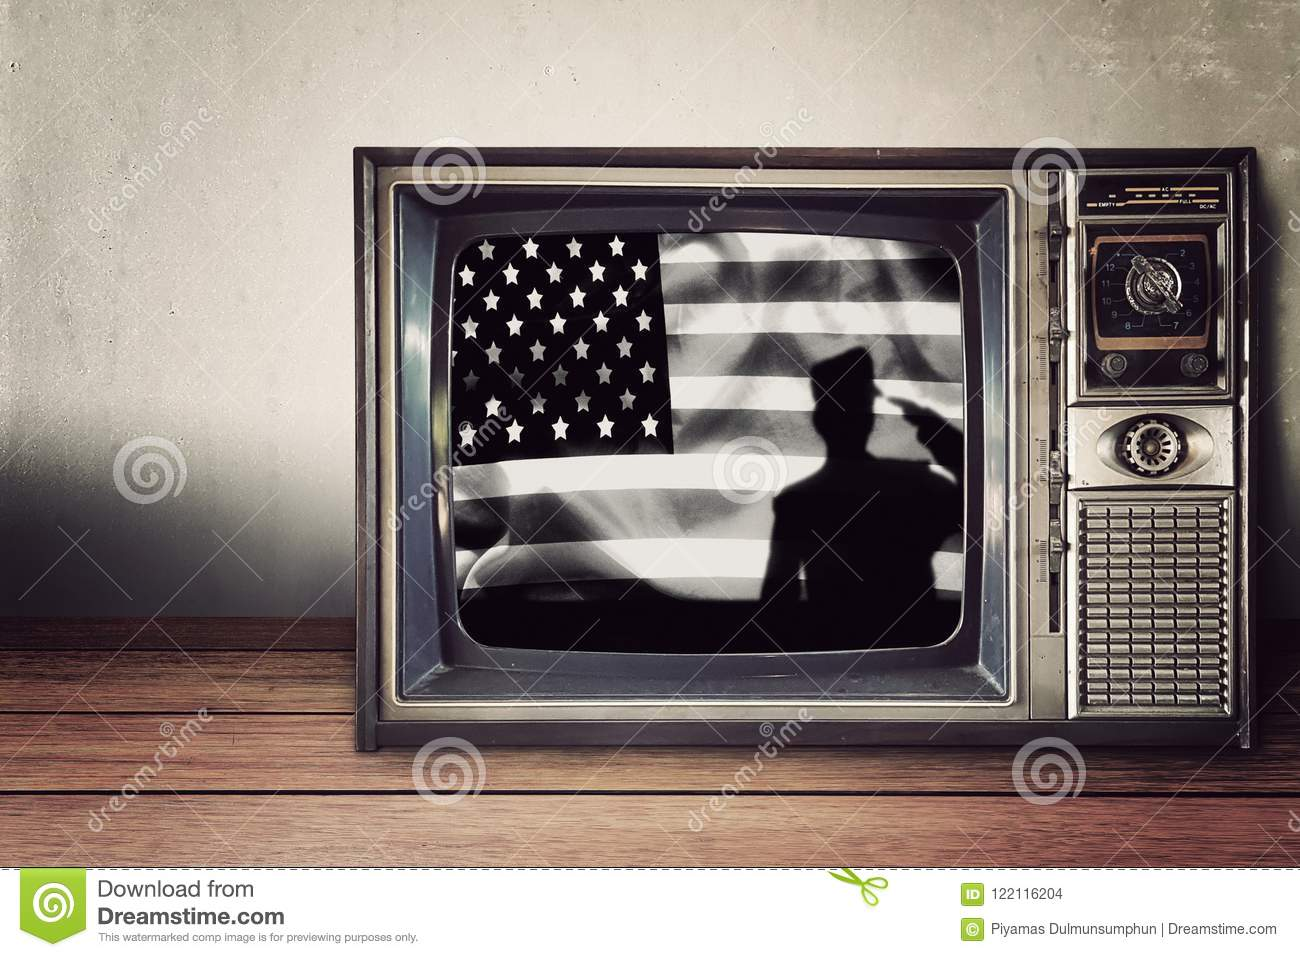 Silhouette of soldier on american flag in vintage television